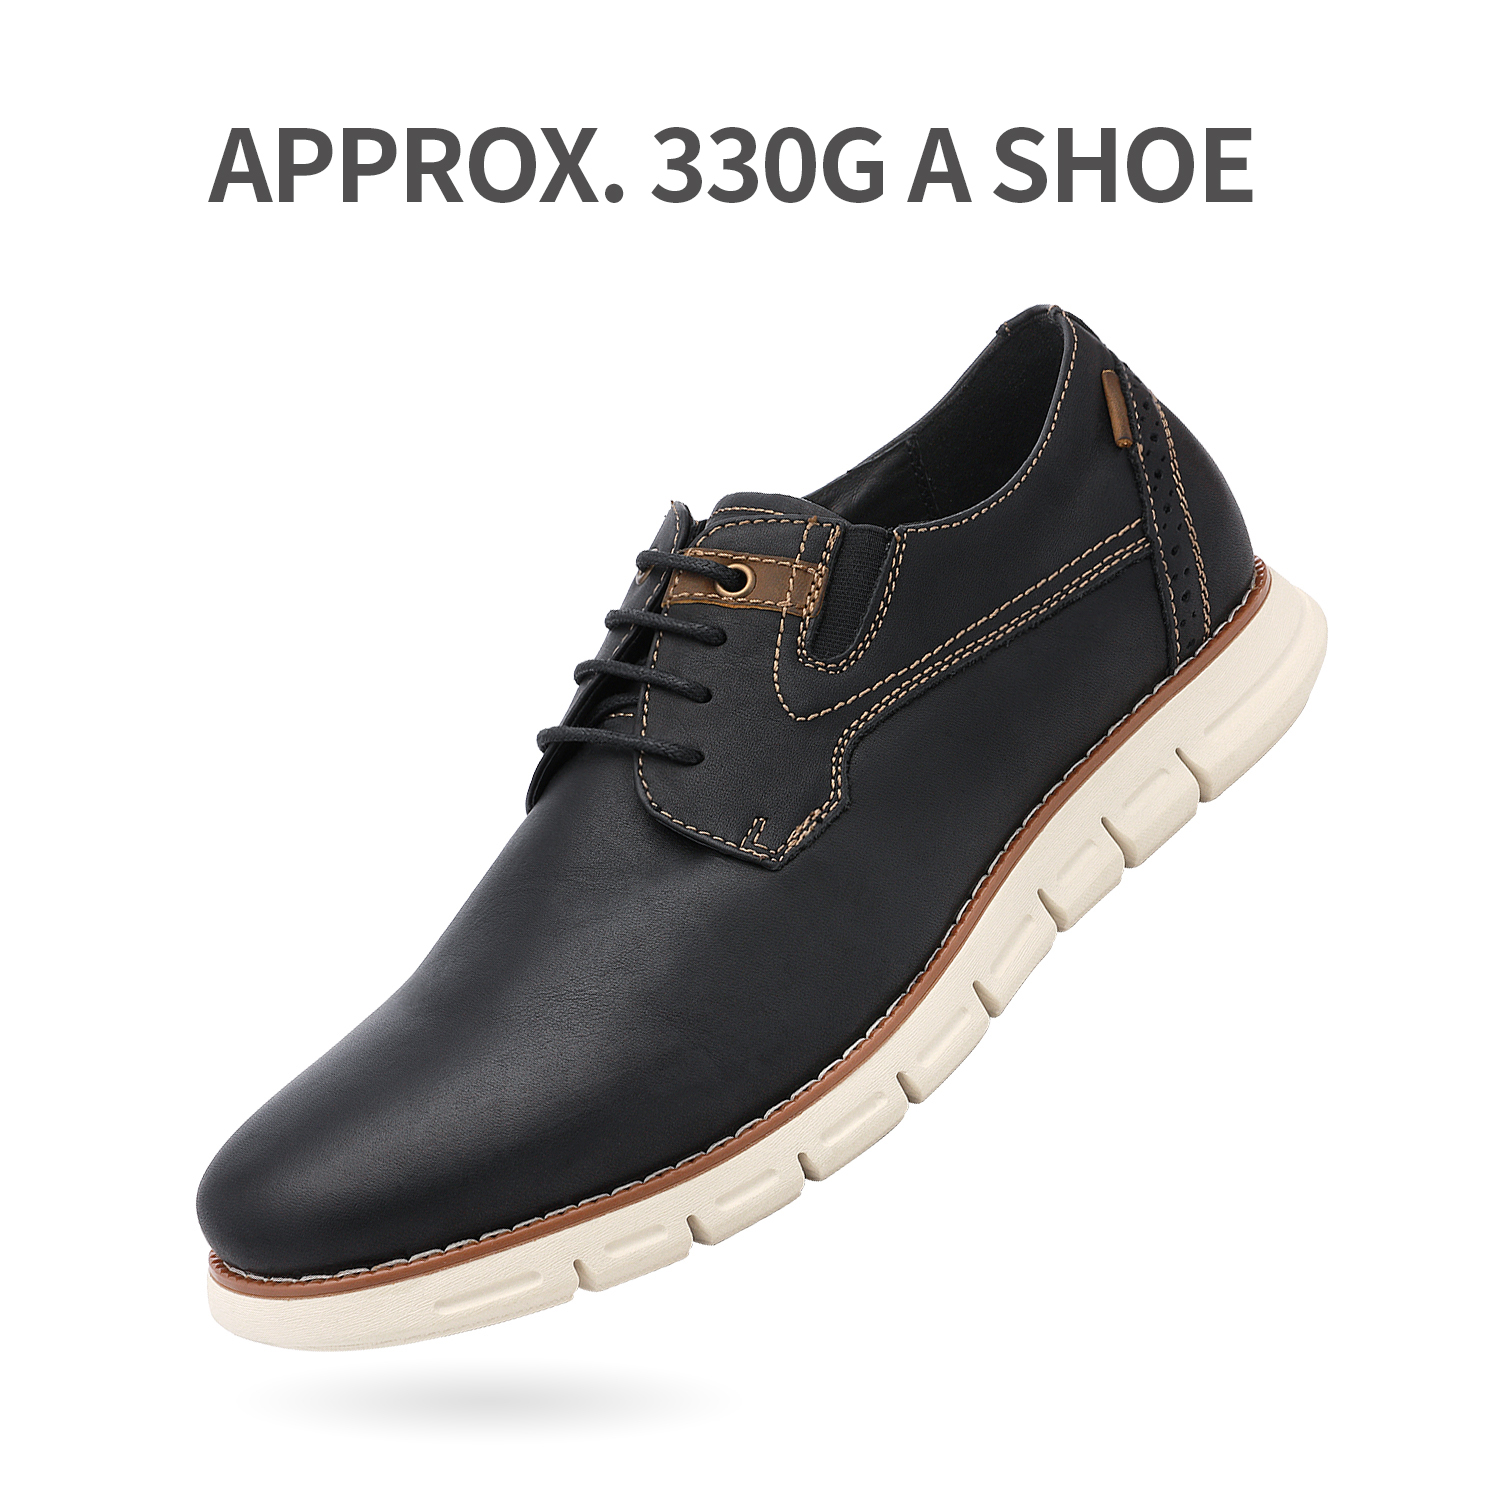 Men-s-Genuine-Leather-Casual-Formal-Sneakers-Lace-up-Business-Oxford-Dress-Shoes thumbnail 34